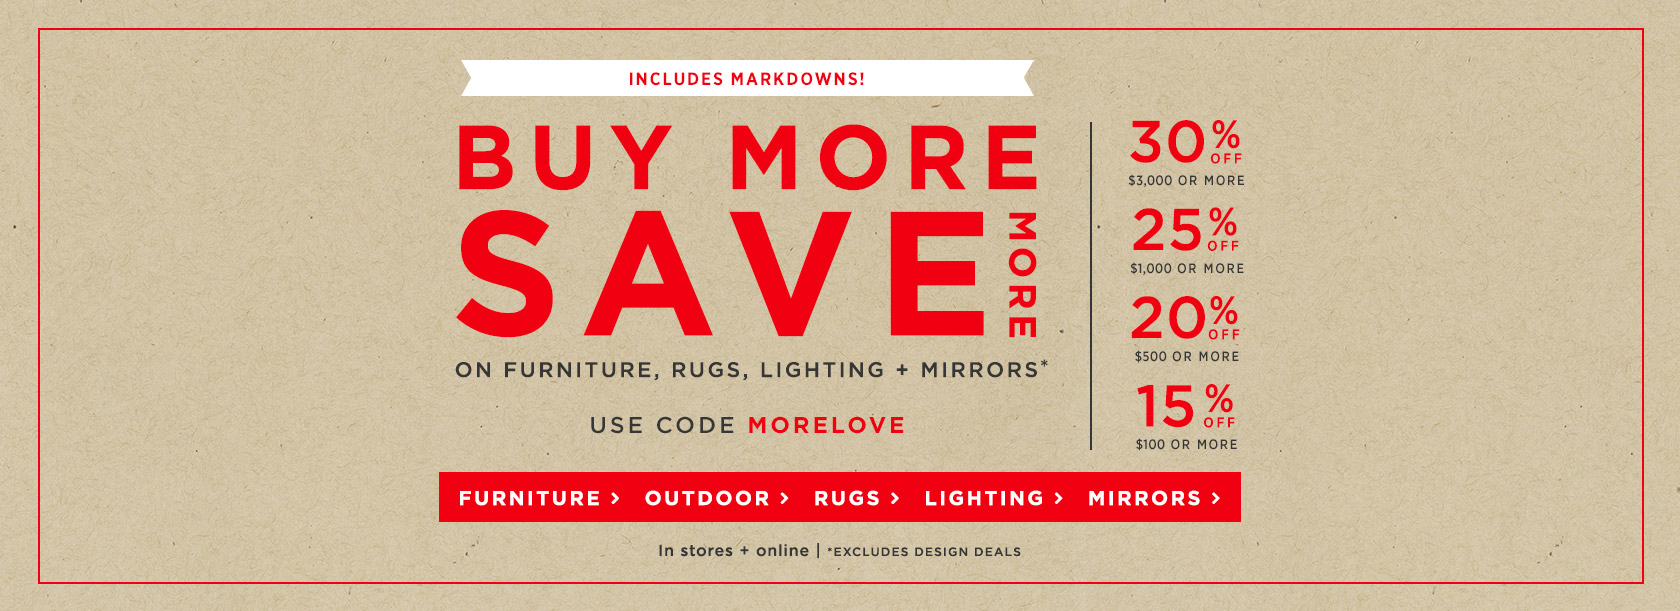 Buy More Save More On Furniture, Rugs, Lighting + Mirrors! Includes Markdowns! Use Code MORELOVE